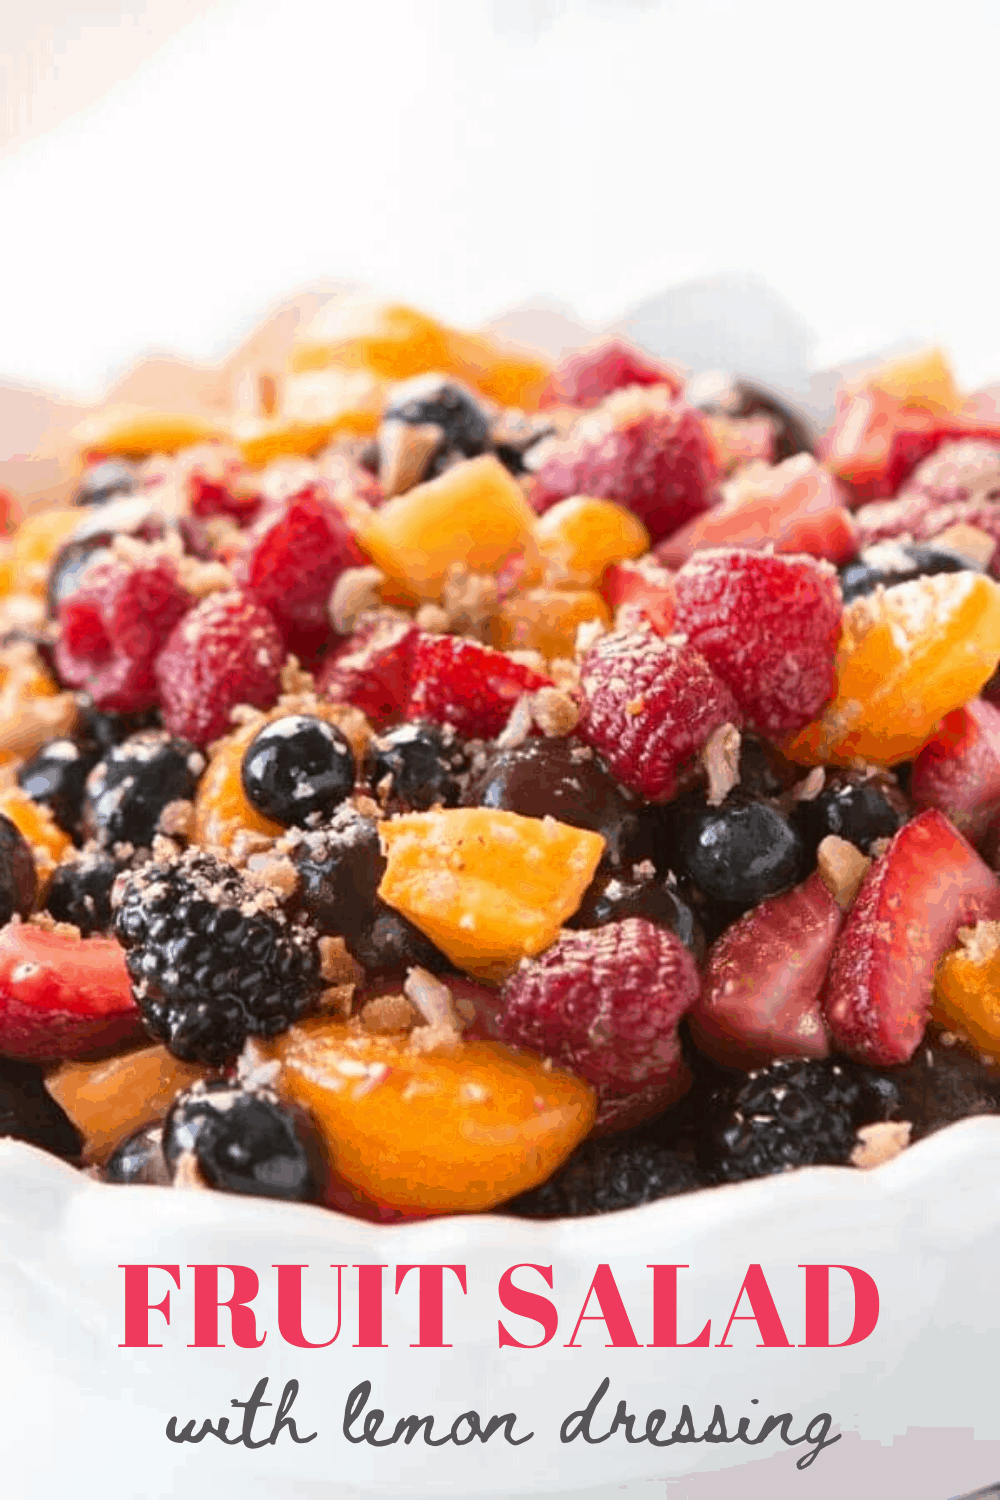 A bowl of fruit salad with blackberries, strawberries, blueberries and mandarin oranges with lemon dressing